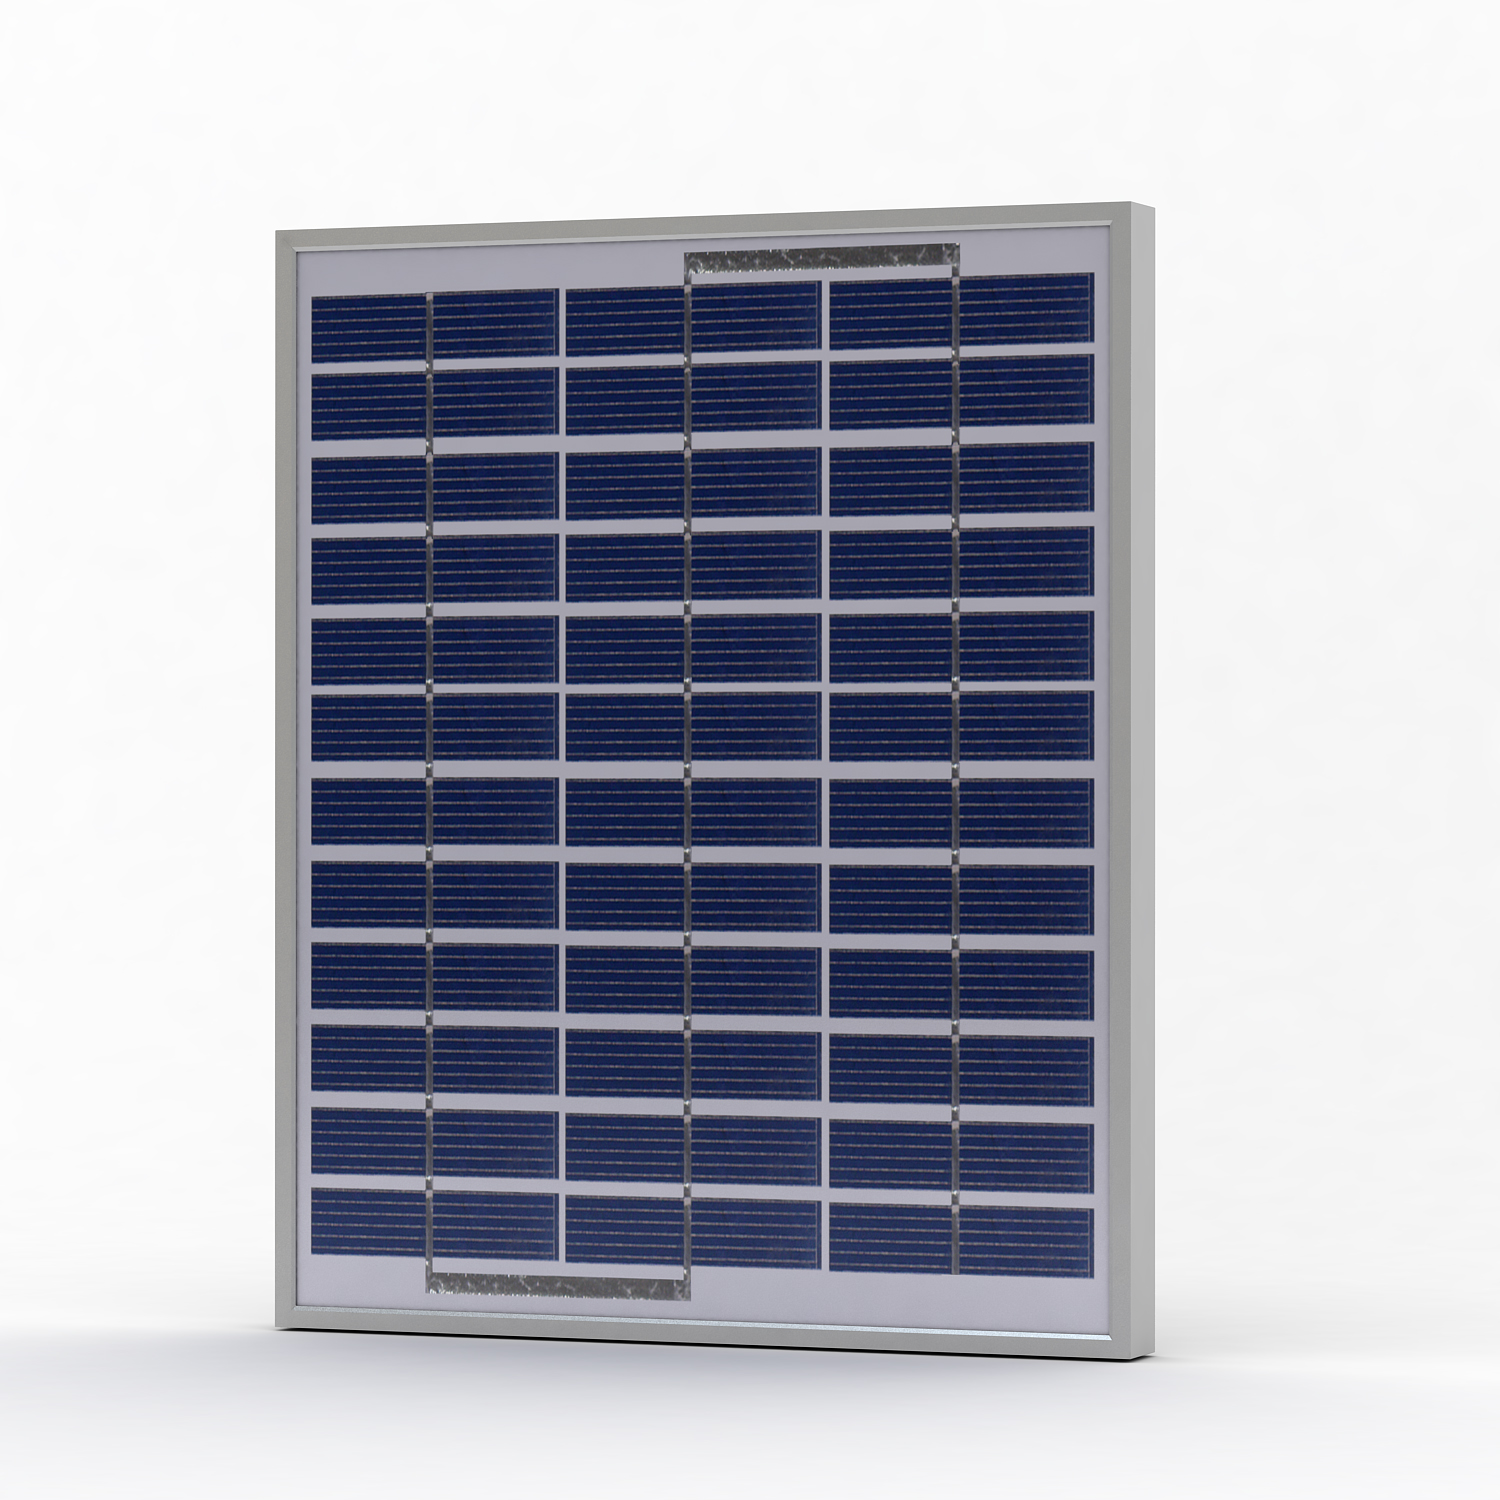 SolarLand 30w 12v High Efficiency Multicrystalline PV Module SLP030-12